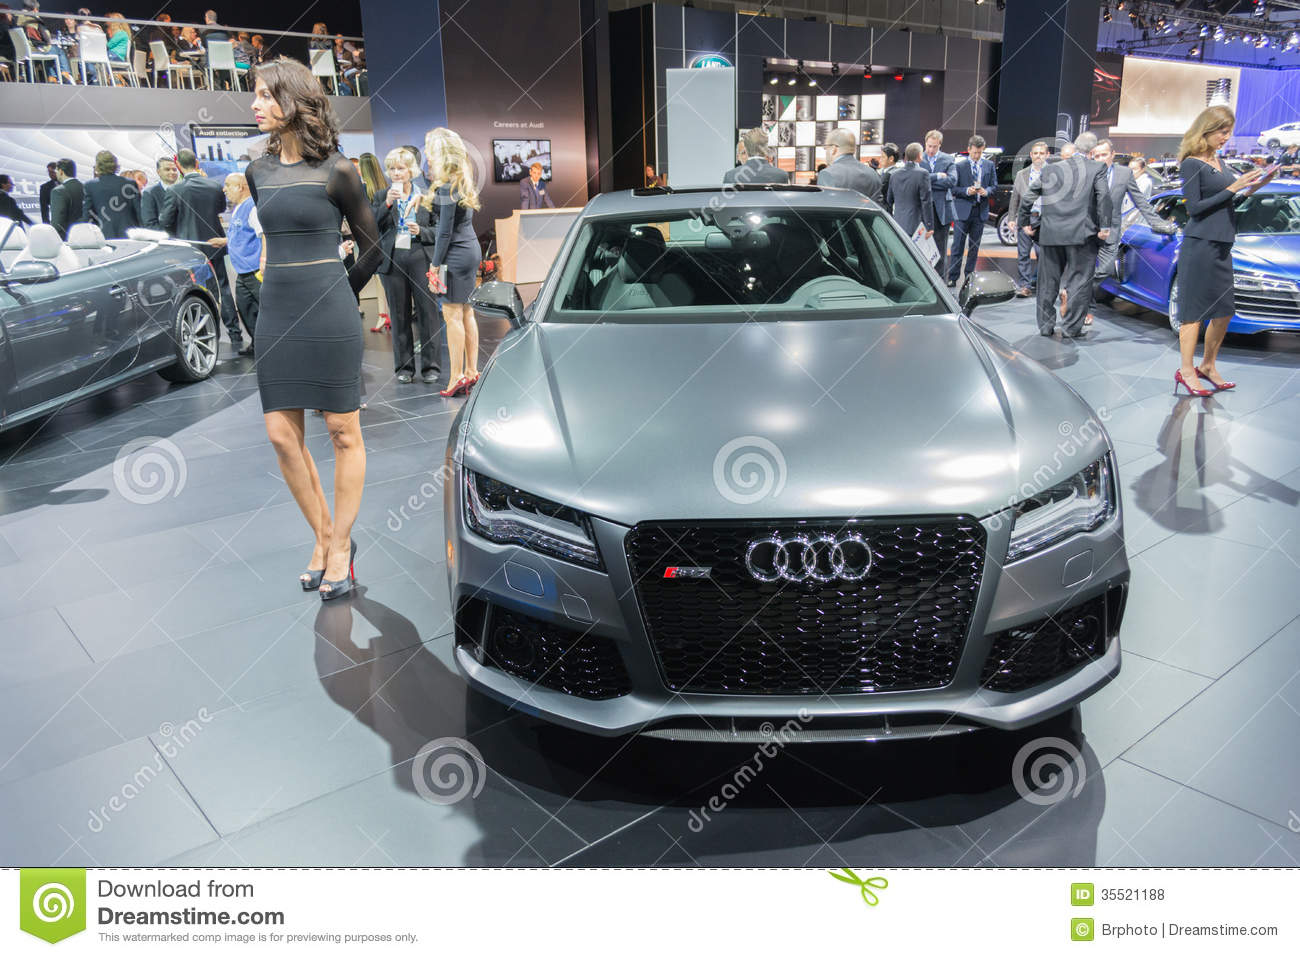 Audi RS 7 Car On Display At The LA Auto Show Editorial